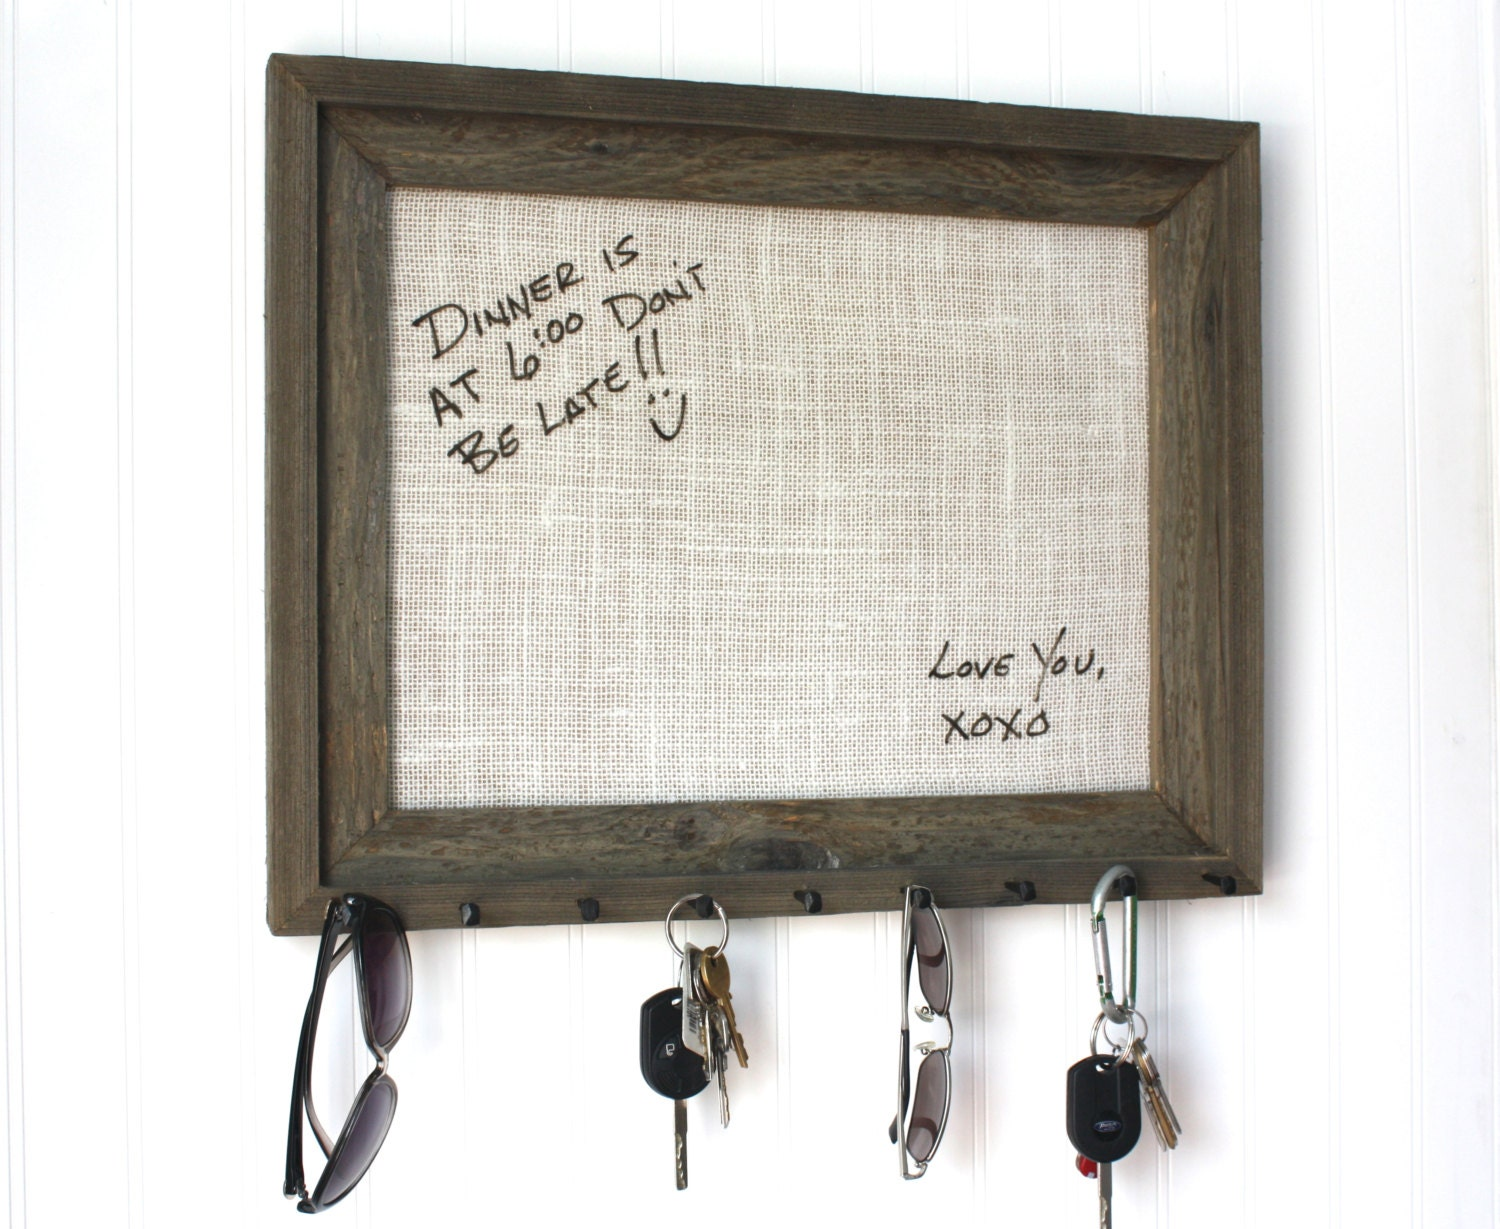 Home decor key holder barnwood dry erase board by hudsonlace for Mural key holder